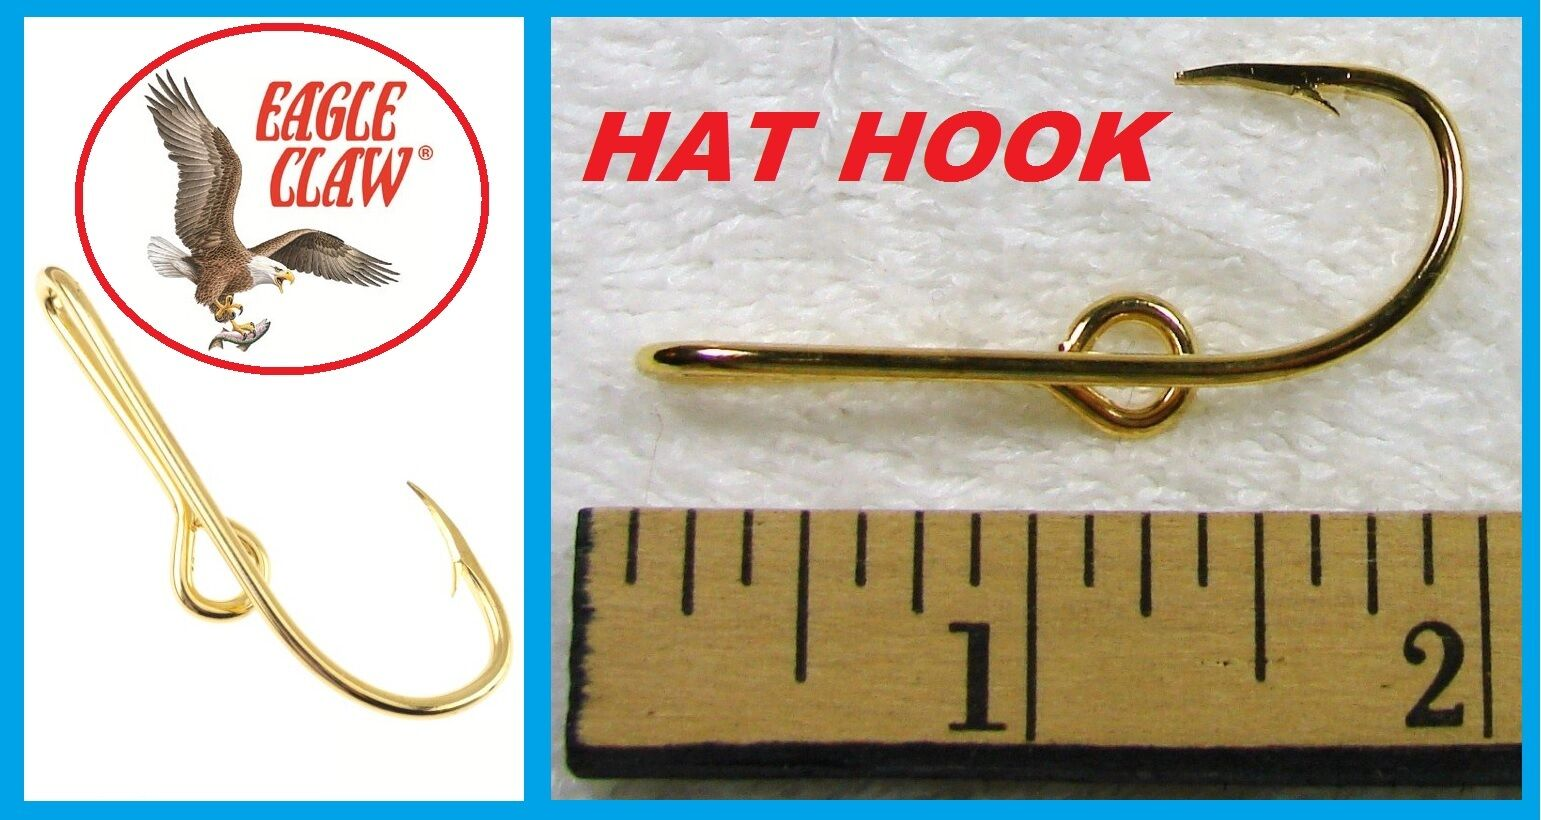 100 EAGLE CLAW HAT HOOKS Hat Pin/Tie FISH Clasp oro PLATED FISH Pin/Tie HOOK HAT PINS  155 62a75b